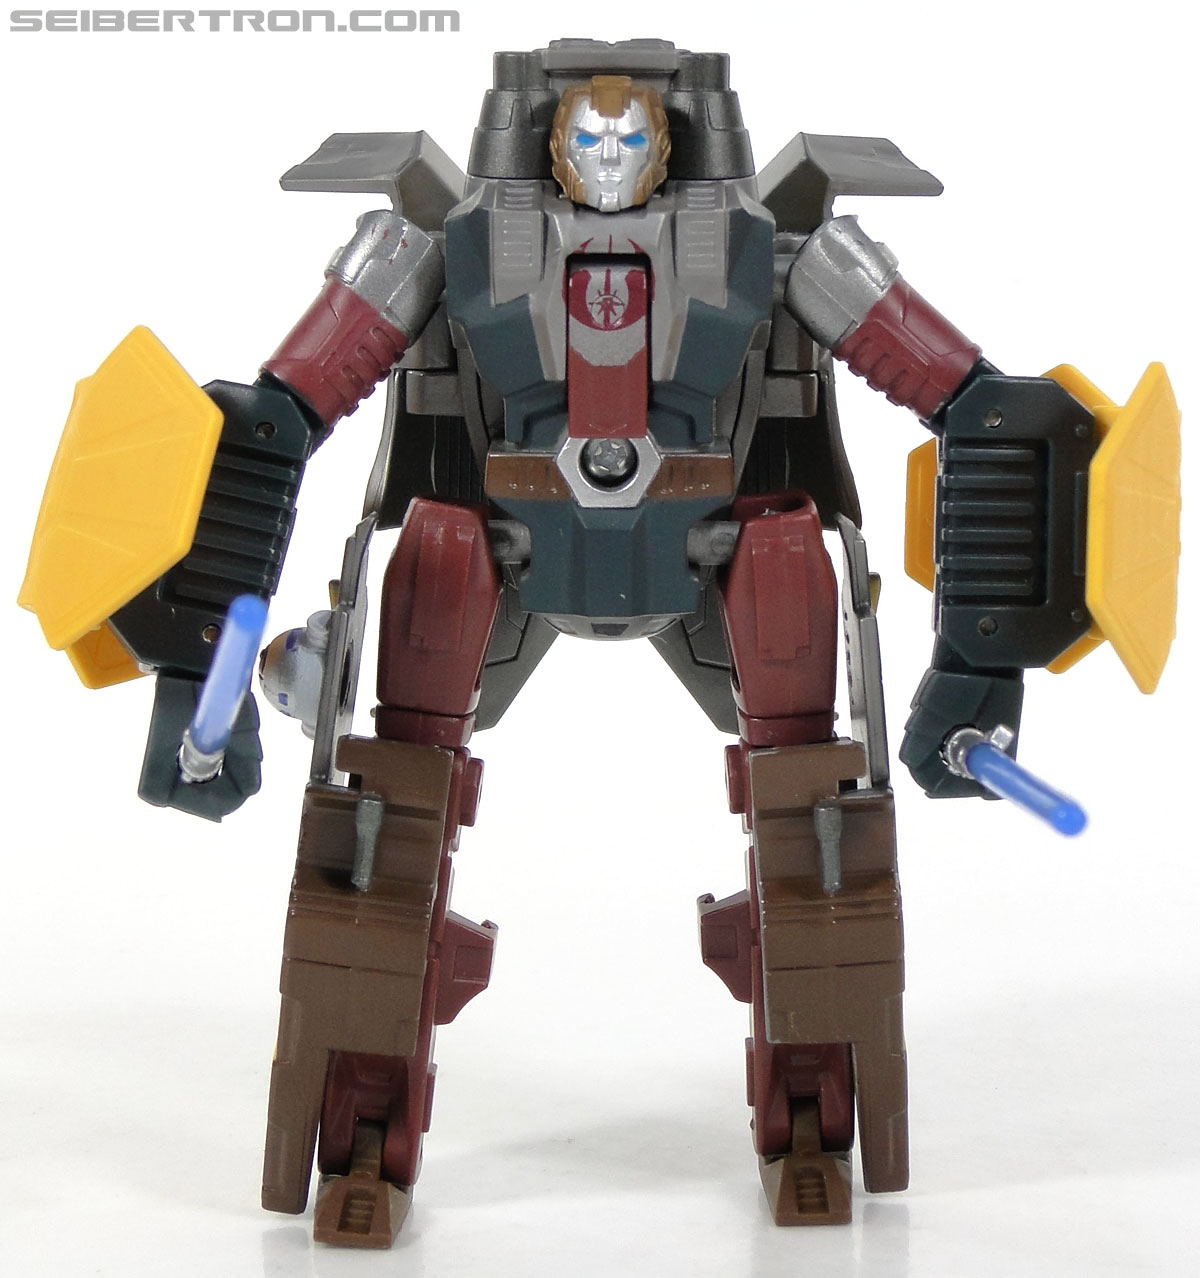 Star Wars Transformers Anakin Skywalker (Jedi Starfighter) (Image #44 of 95)